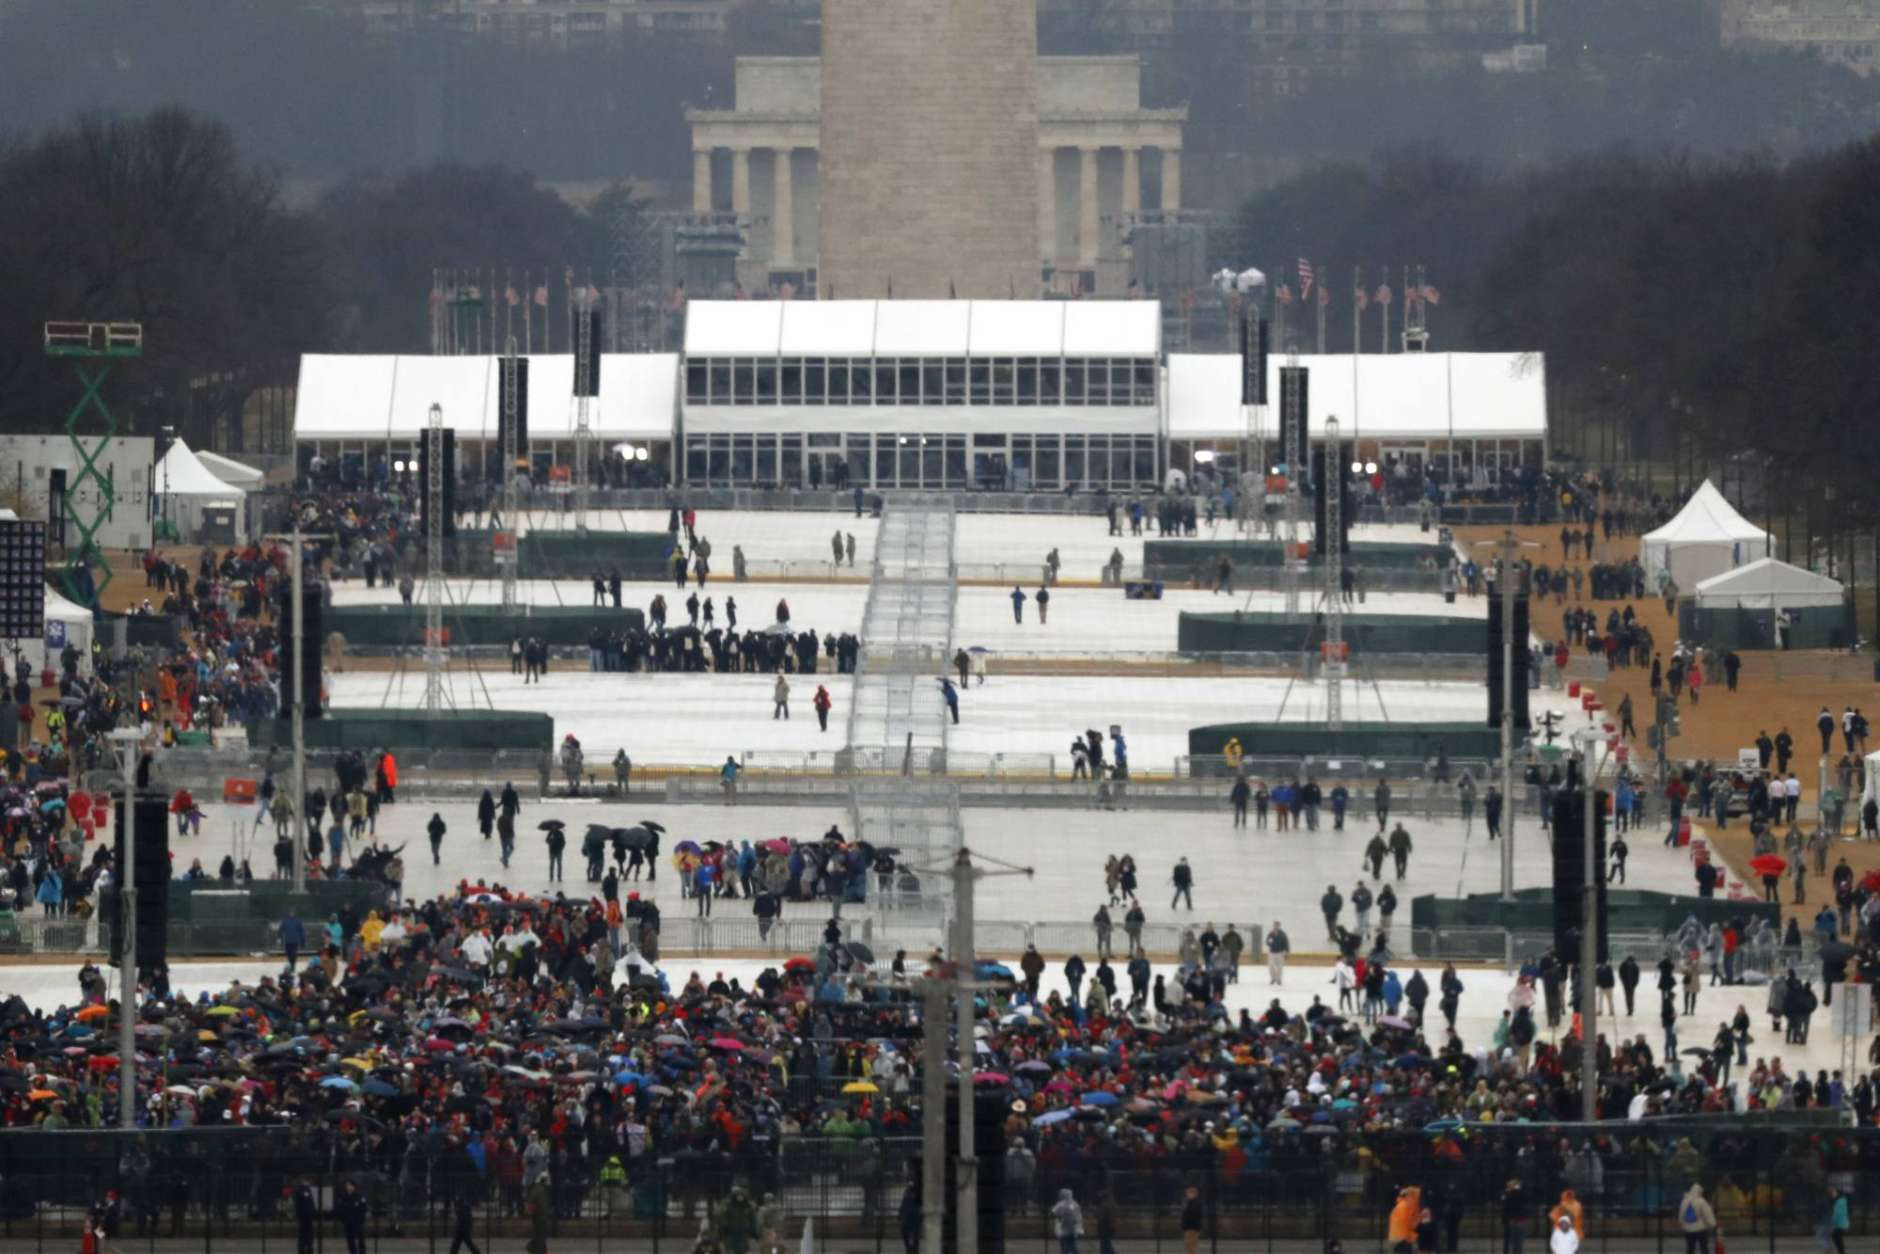 The crowd starts to fill in along the National Mall before the swearing in of Donald Trump as the 45th president of the Untied States during the 58th Presidential Inauguration at the U.S. Capitol in Washington. Friday, Jan. 20, 2017 (AP Photo/Carolyn Kaster)